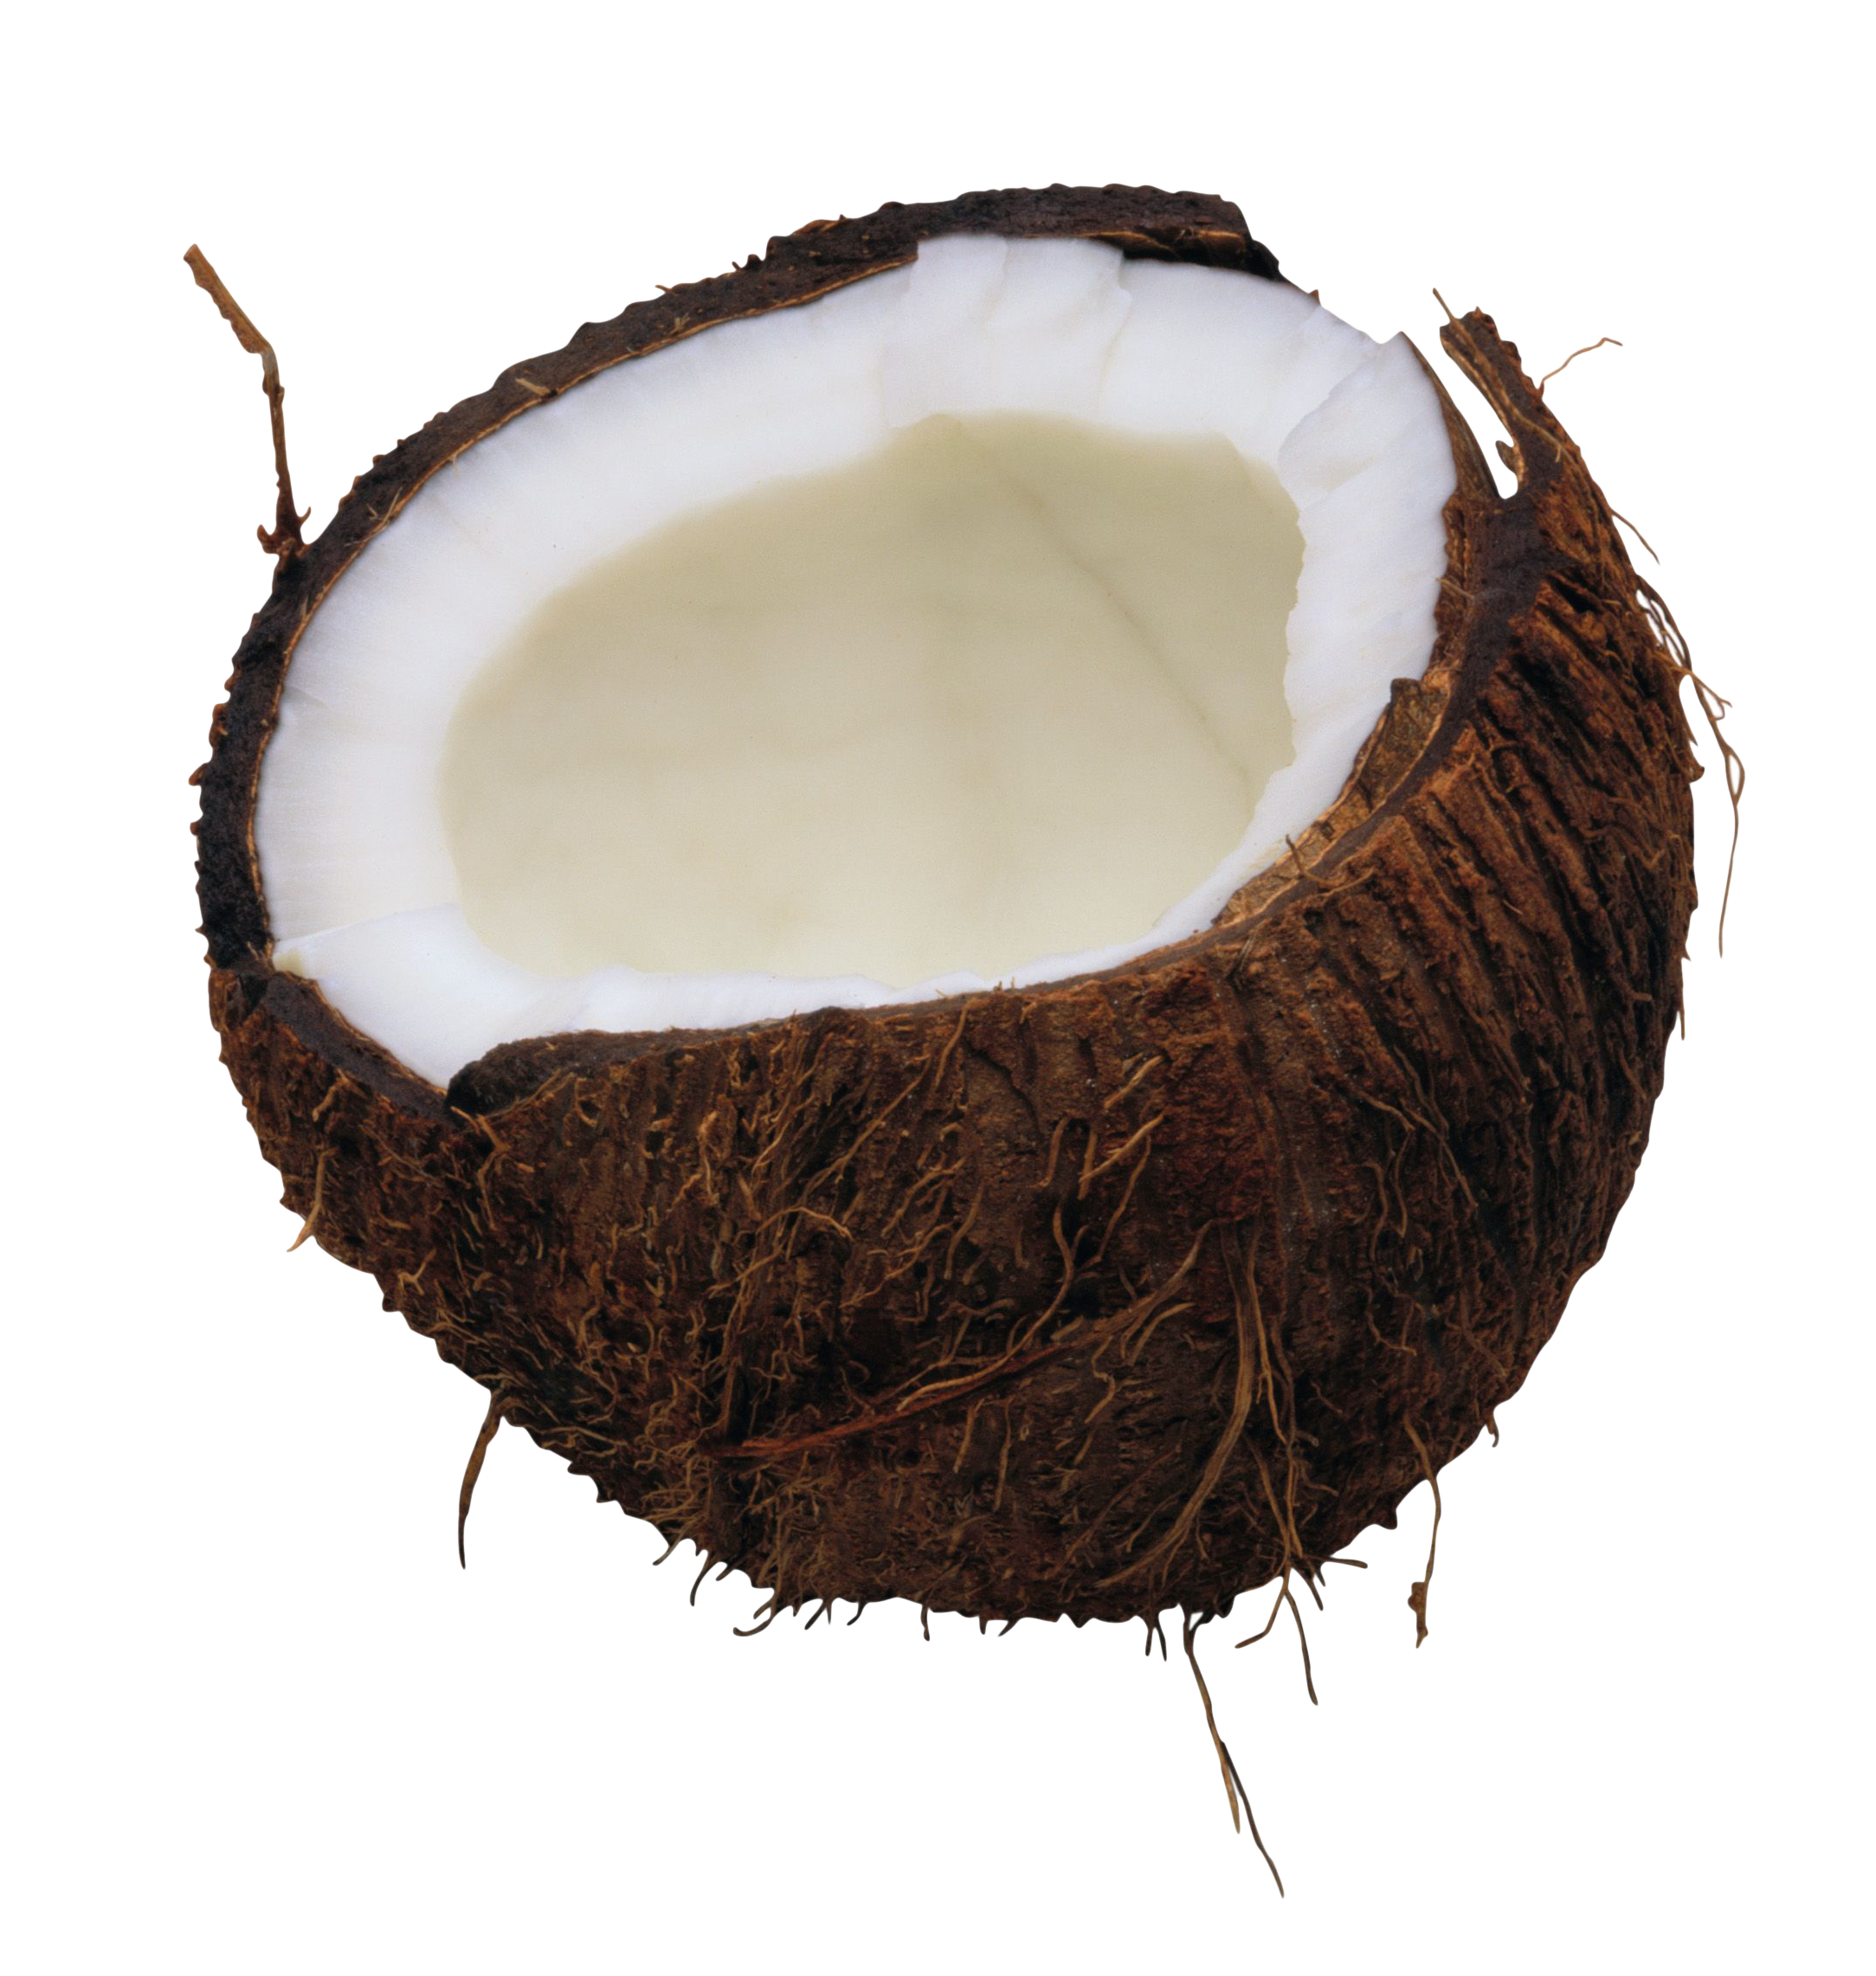 Png photo. Coconut image purepng free